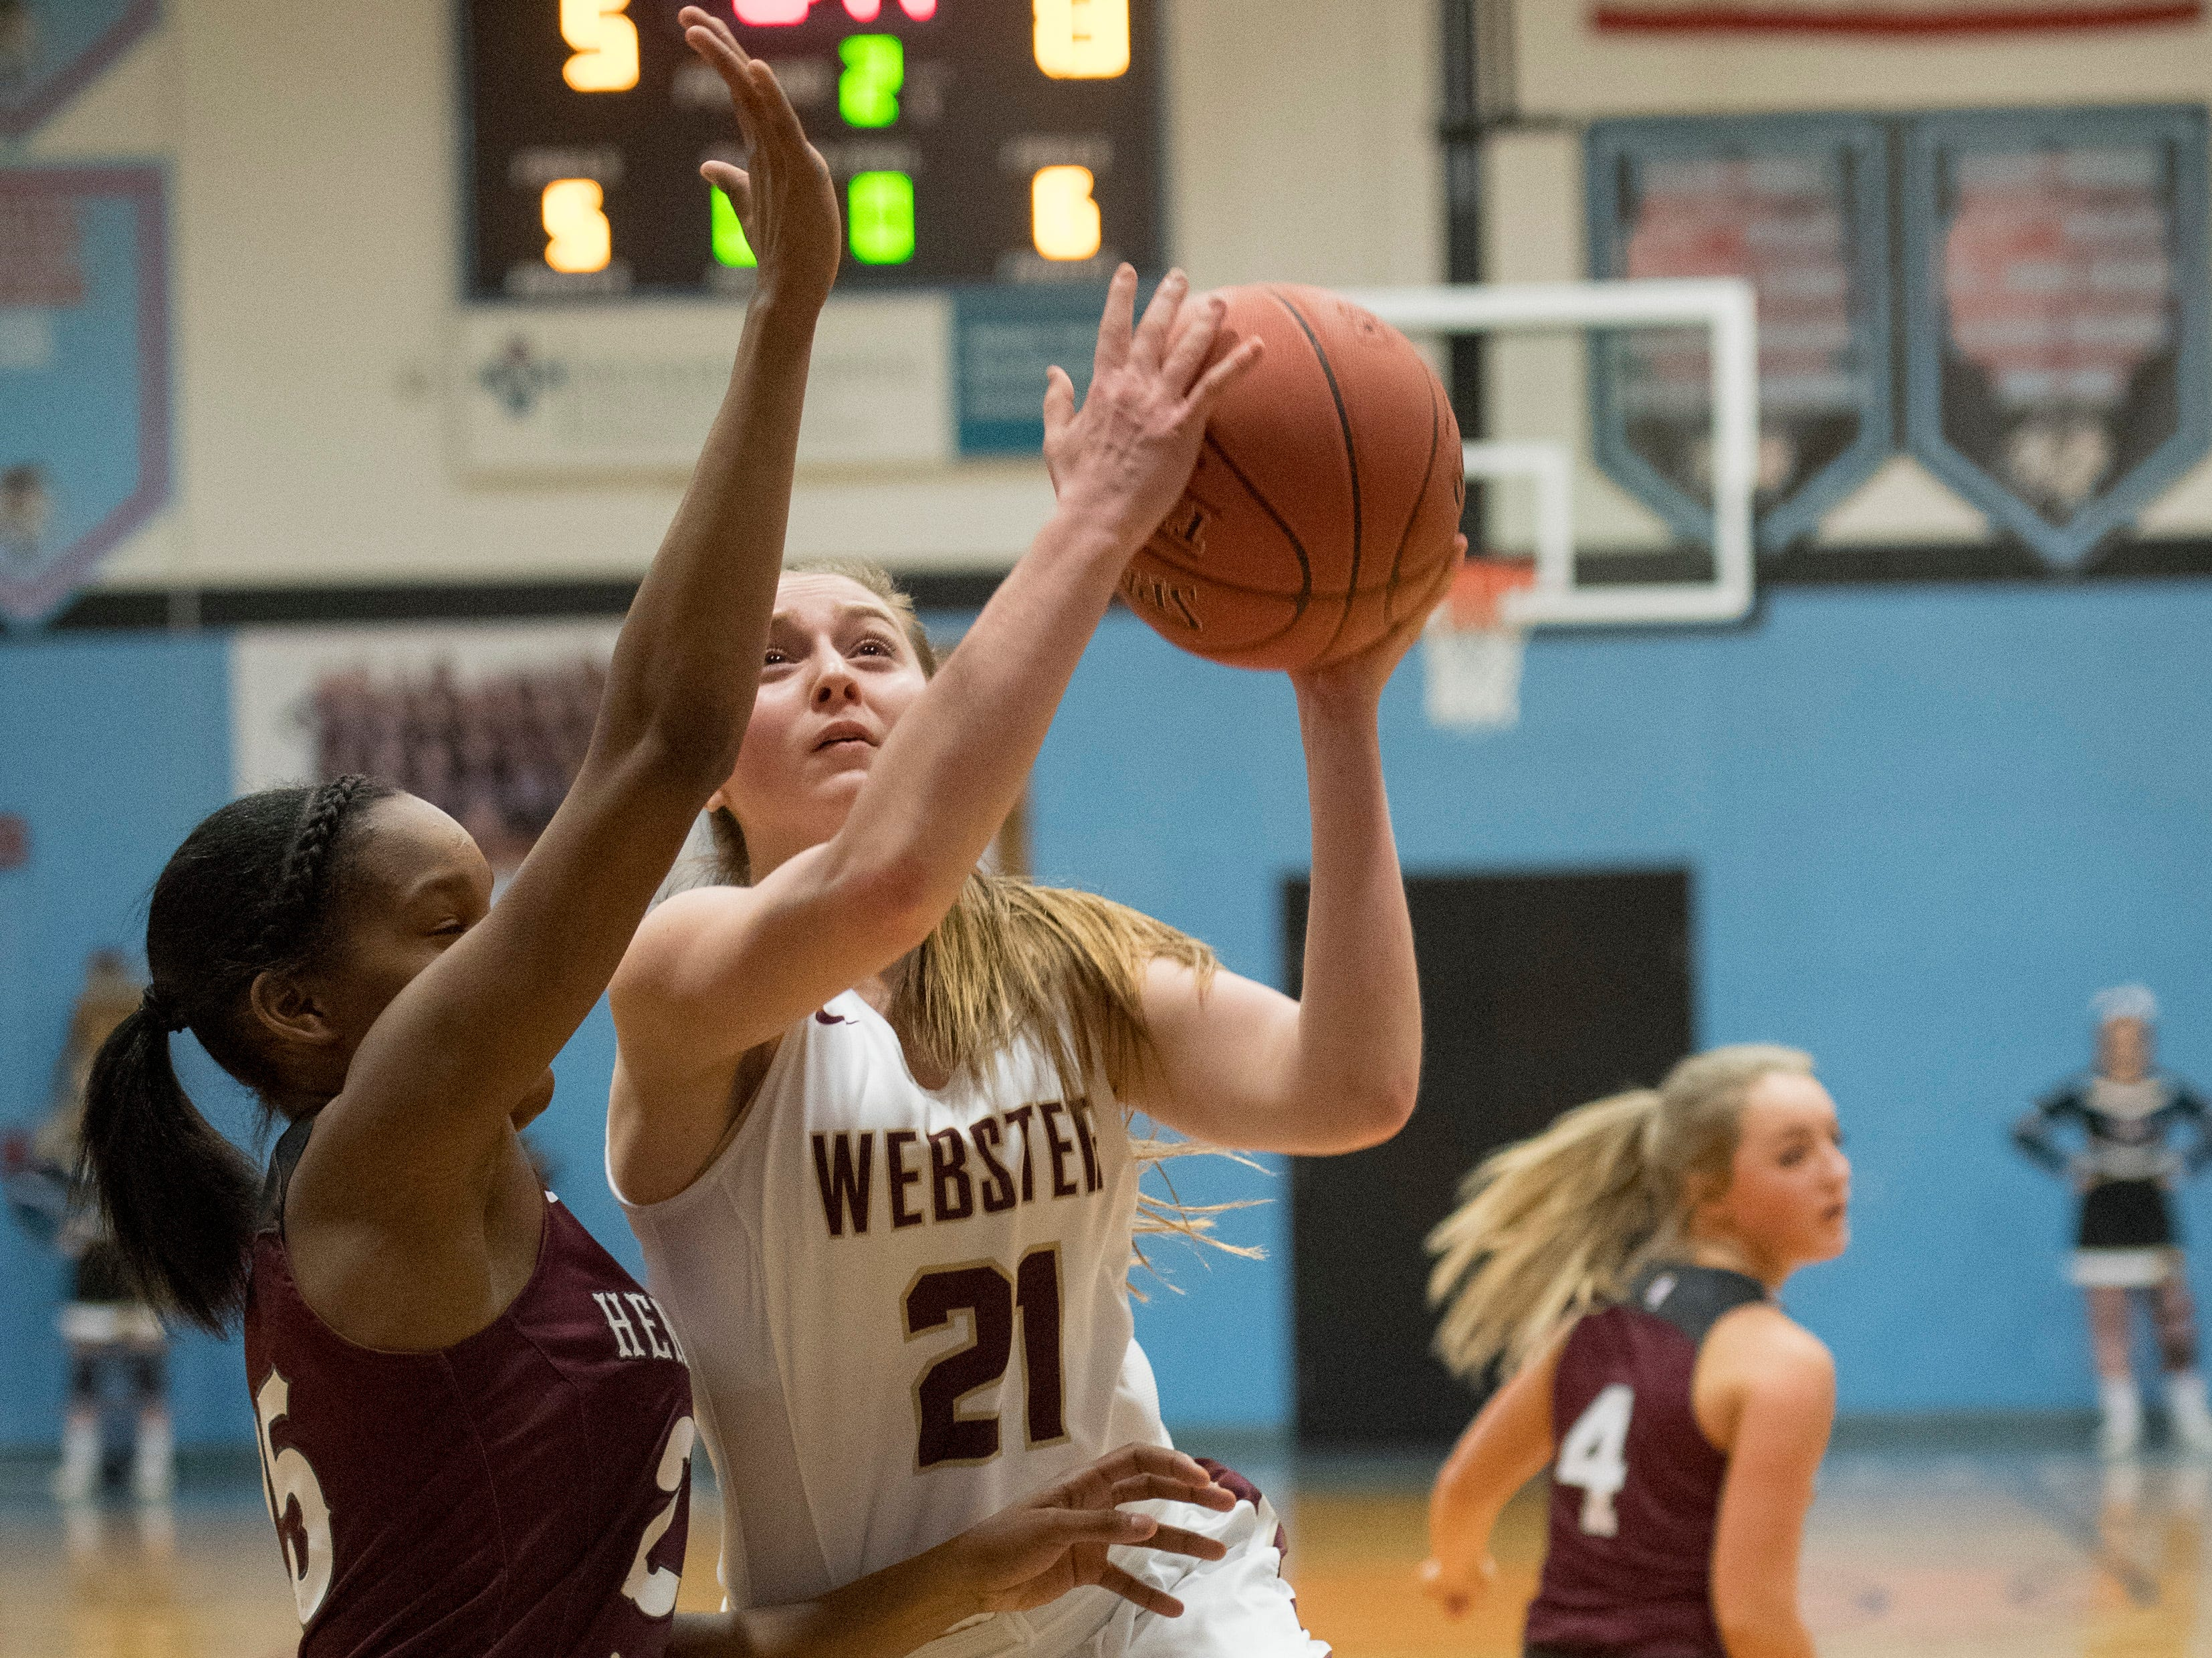 Webster County's Mariah Austin (21) takes a shot during the 2019 Sixth District championship game against the Henderson County Lady Colonels at Union County High School Thursday, Feb. 21, 2019.